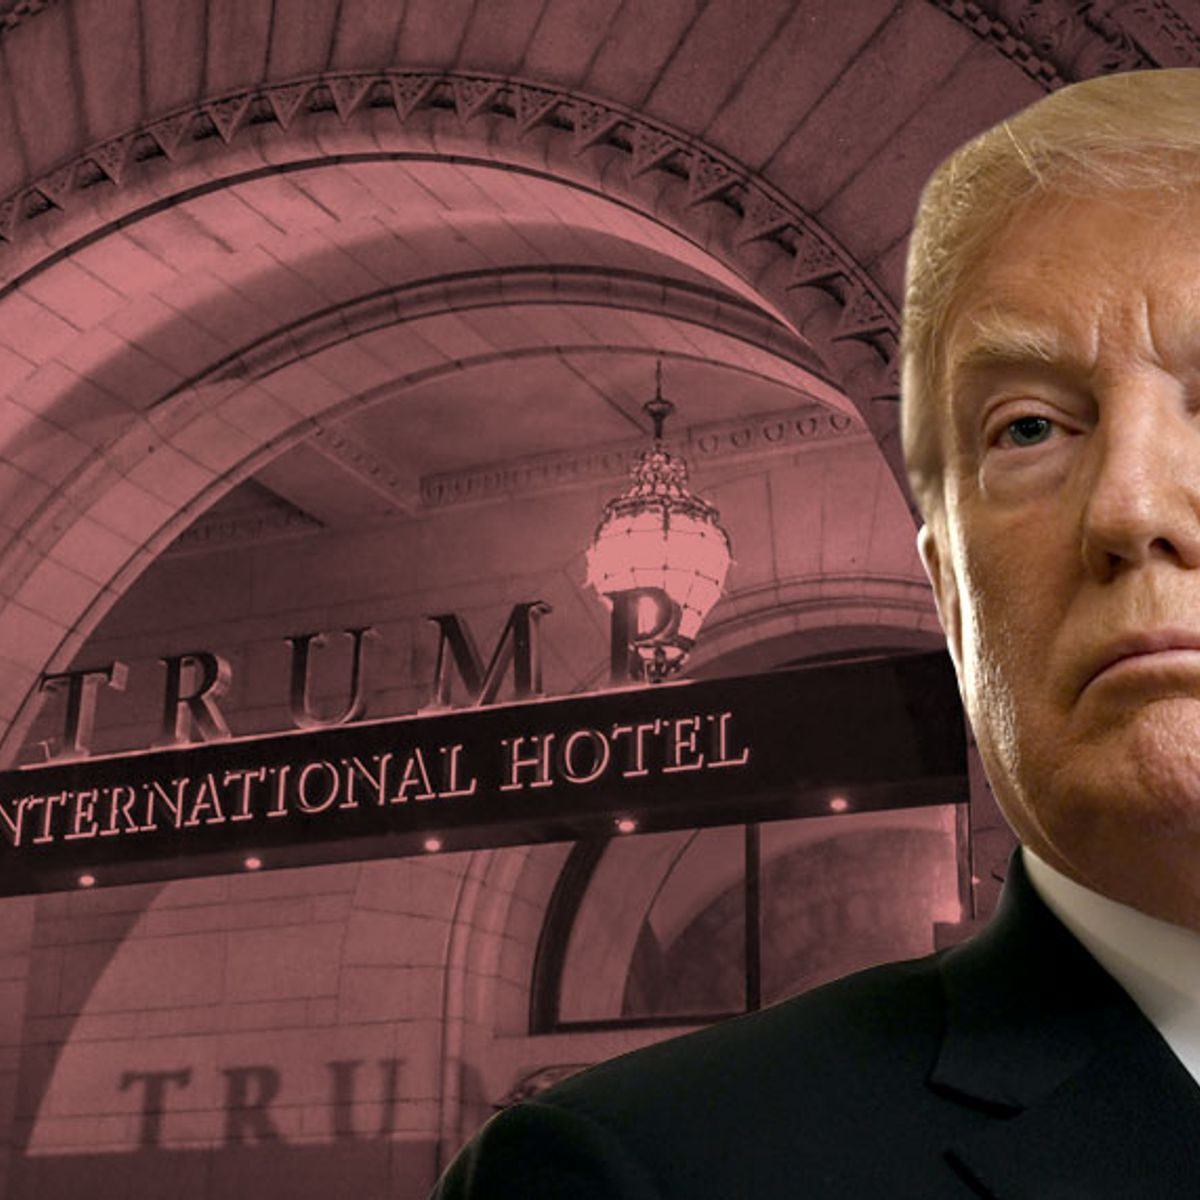 House Dems investigating whether groups tried to curry favor with Trump through hotel bookings